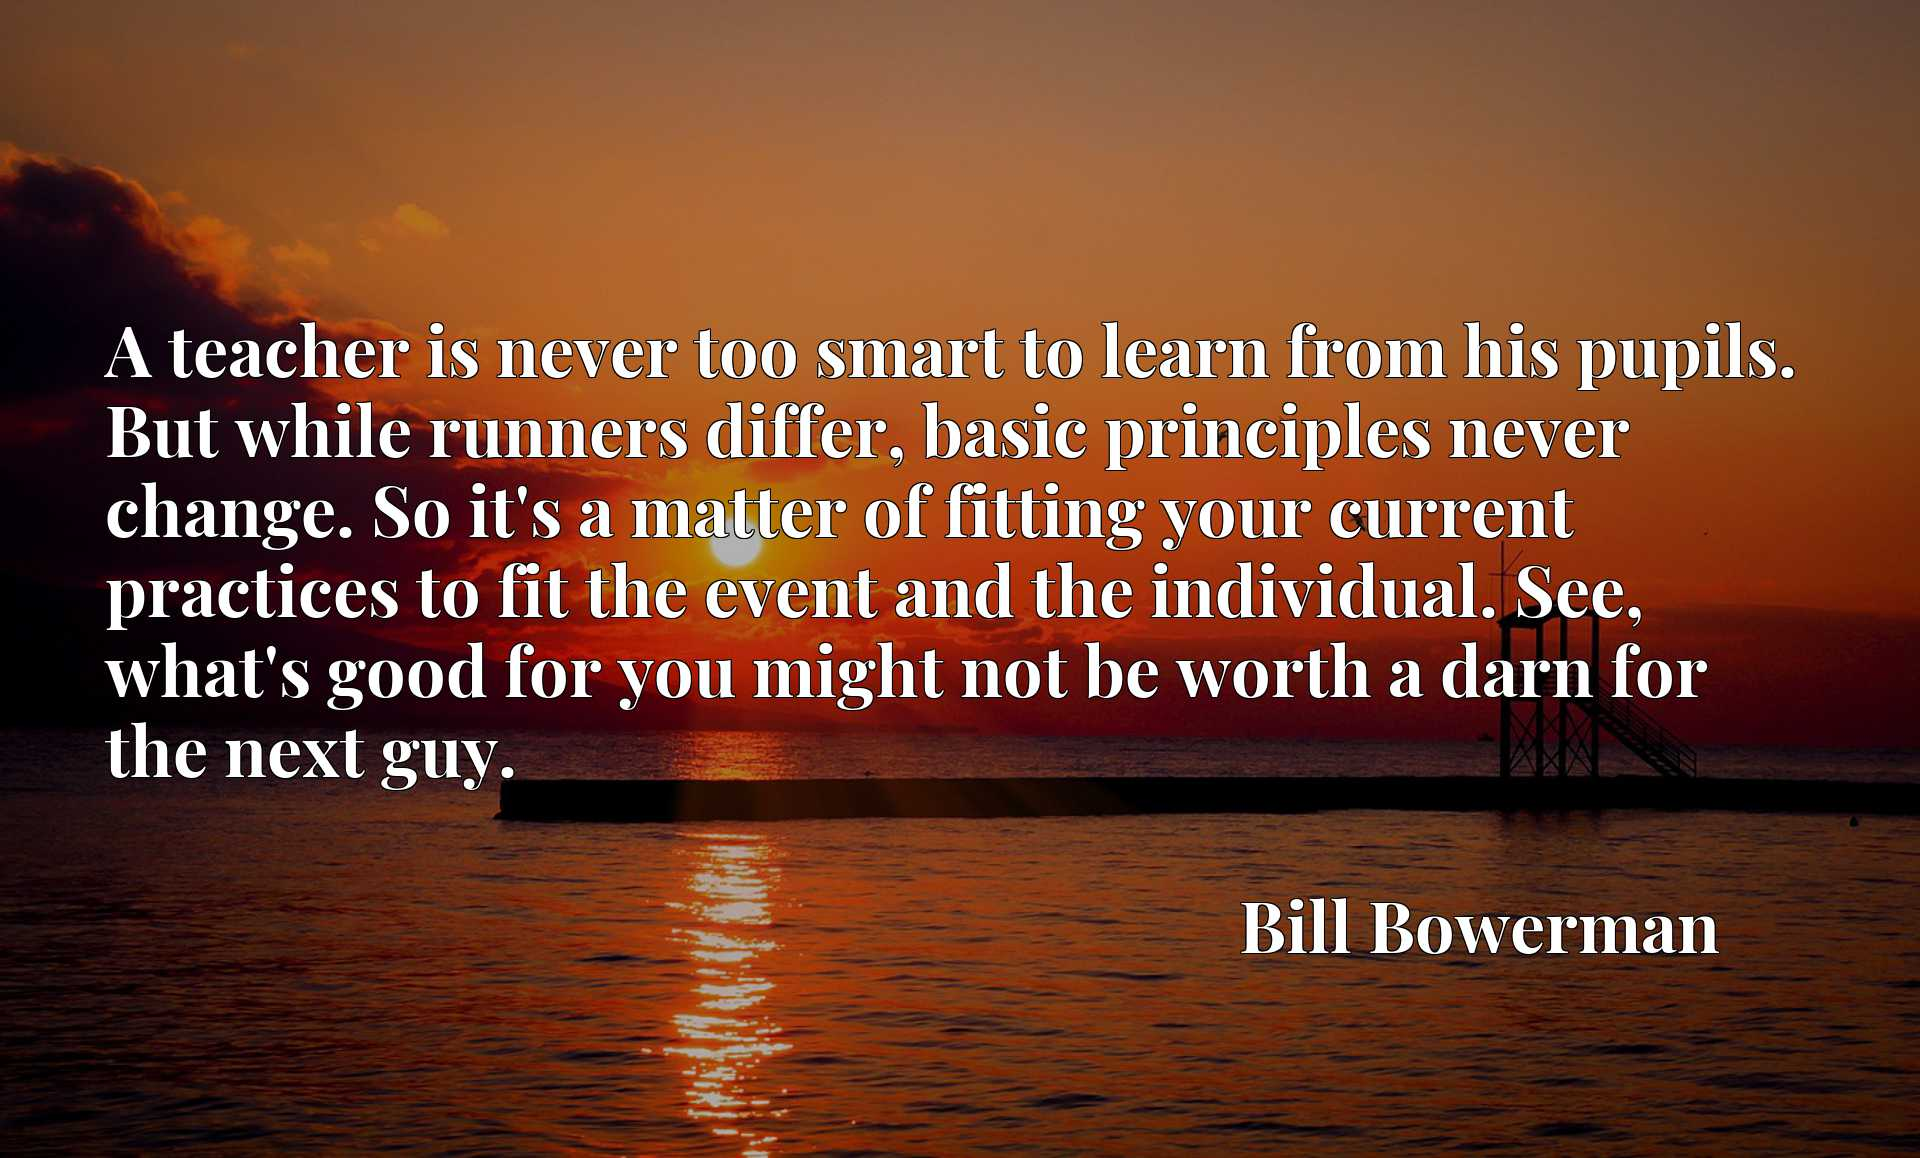 A teacher is never too smart to learn from his pupils. But while runners differ, basic principles never change. So it's a matter of fitting your current practices to fit the event and the individual. See, what's good for you might not be worth a darn for the next guy.